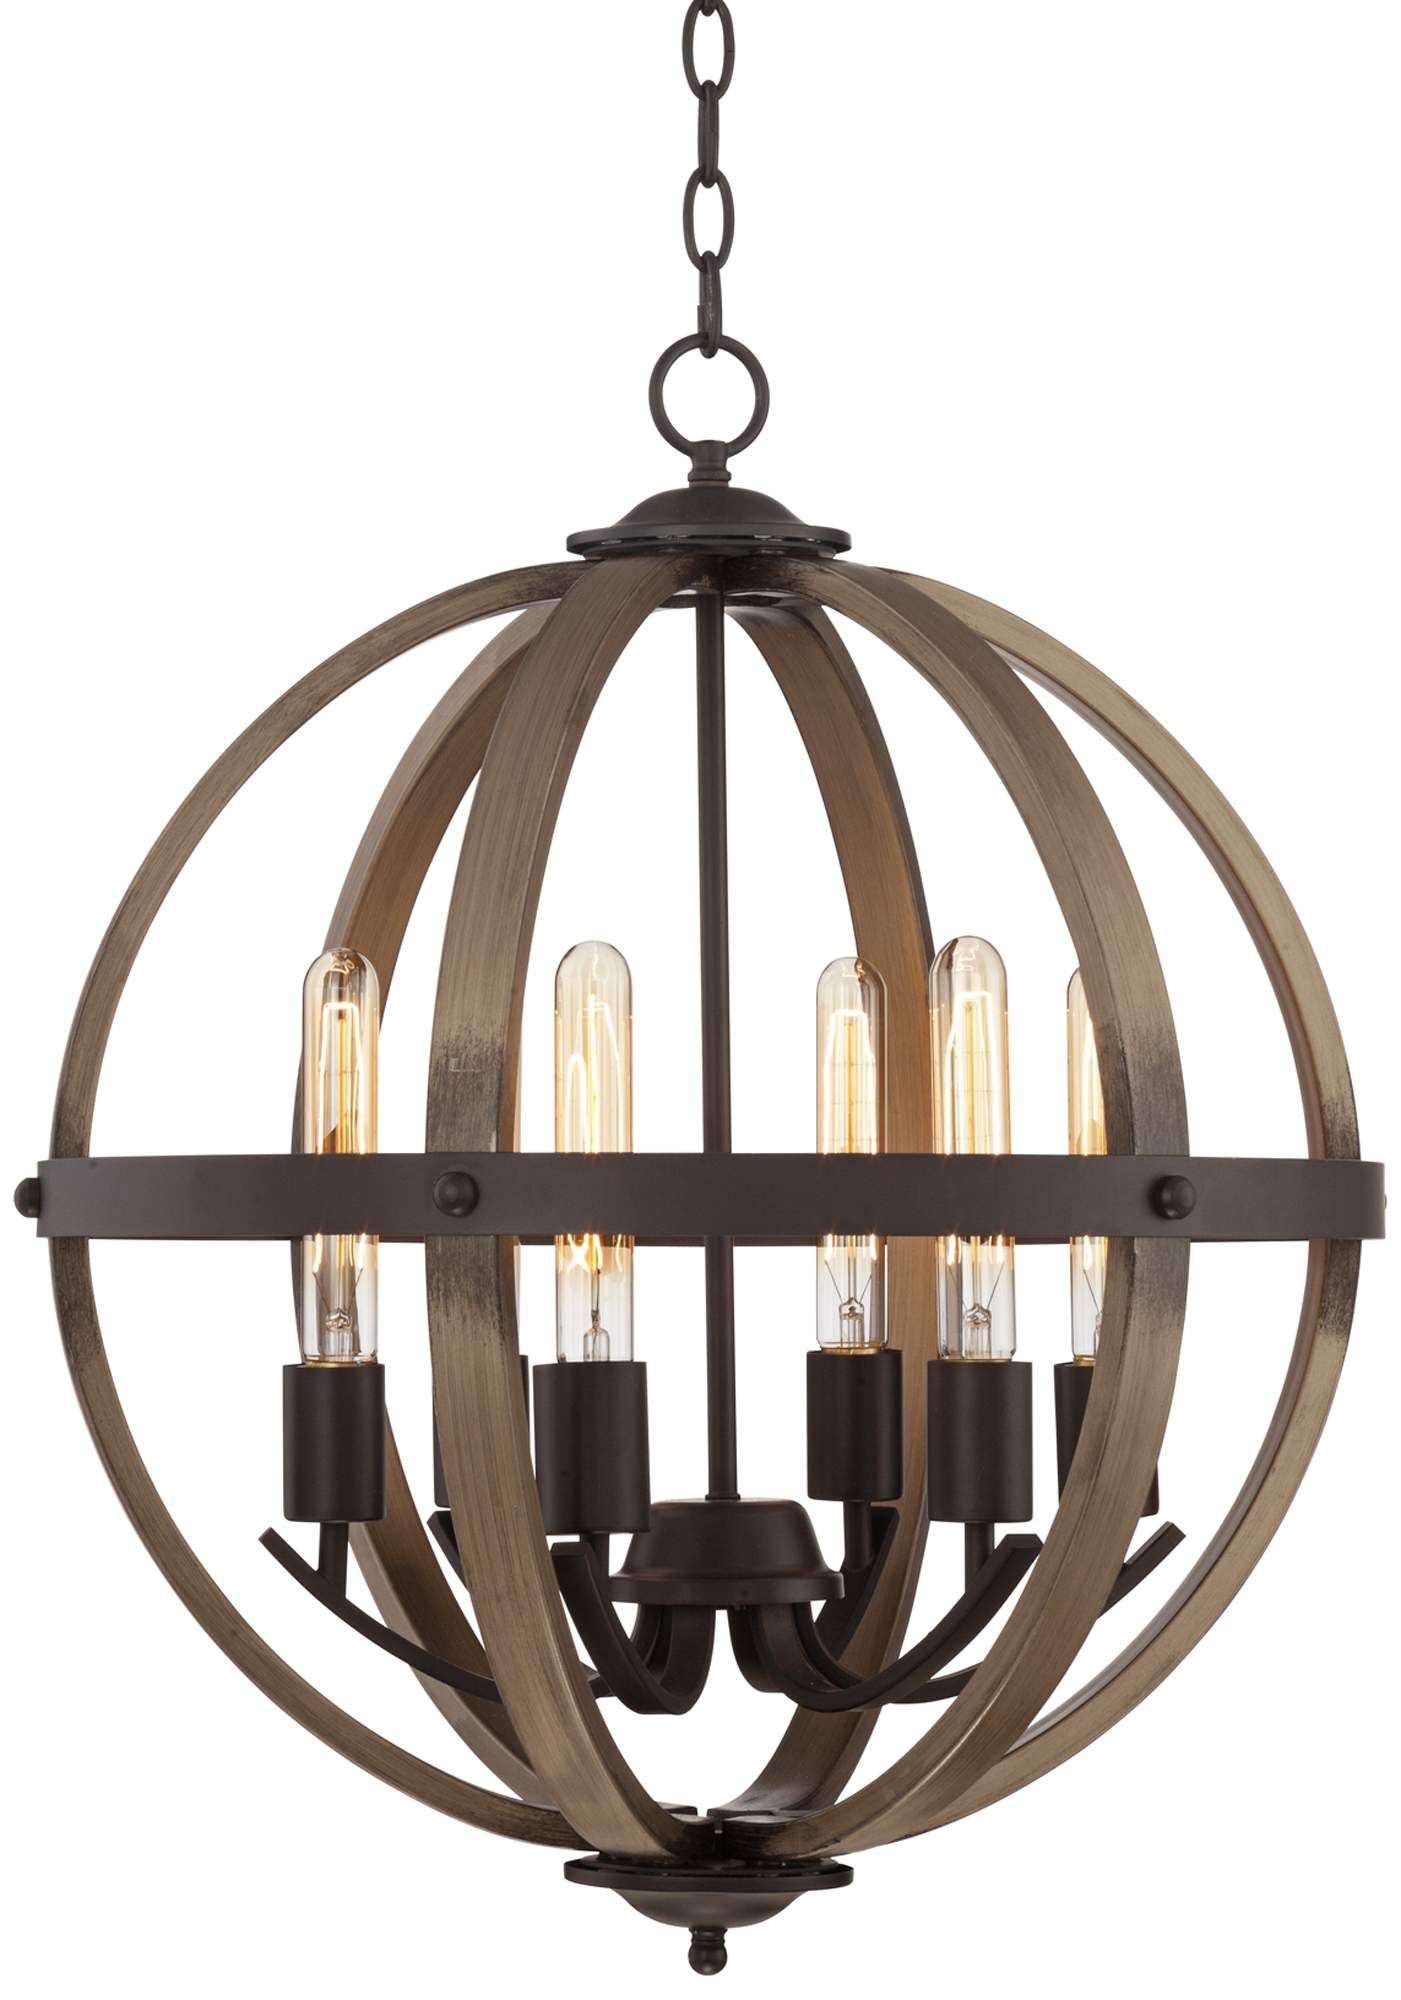 chandelier currey and fbx company lamp orb models cgtrader mtl model obj max axel furniture bronze